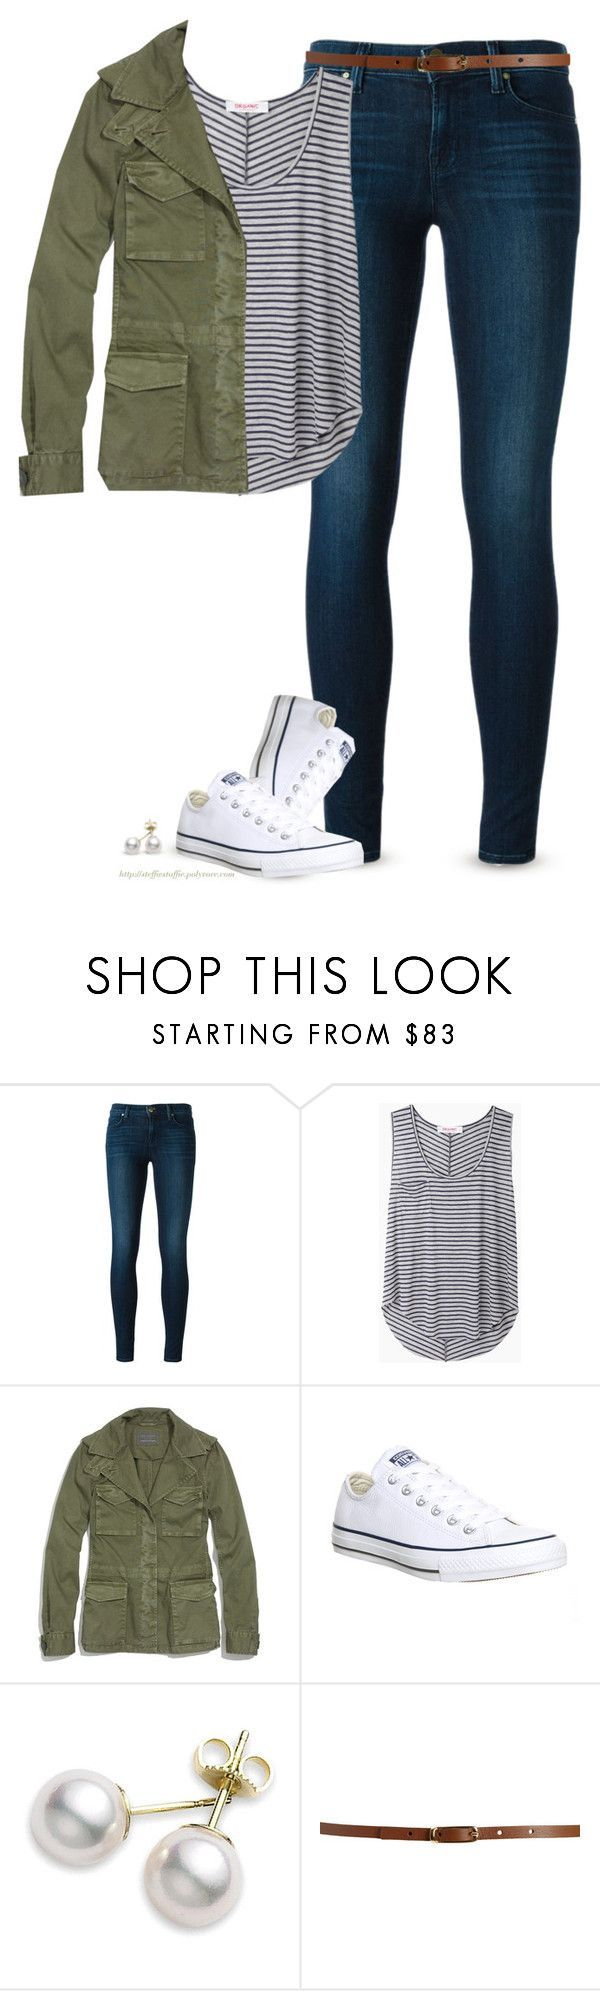 Army Green jacket, Striped top  Chucks by steffiestaffie ❤ liked on Polyvore featuring J Brand, Organic by John Patrick, Madewell, Converse, Mikimoto and Maison Boinet